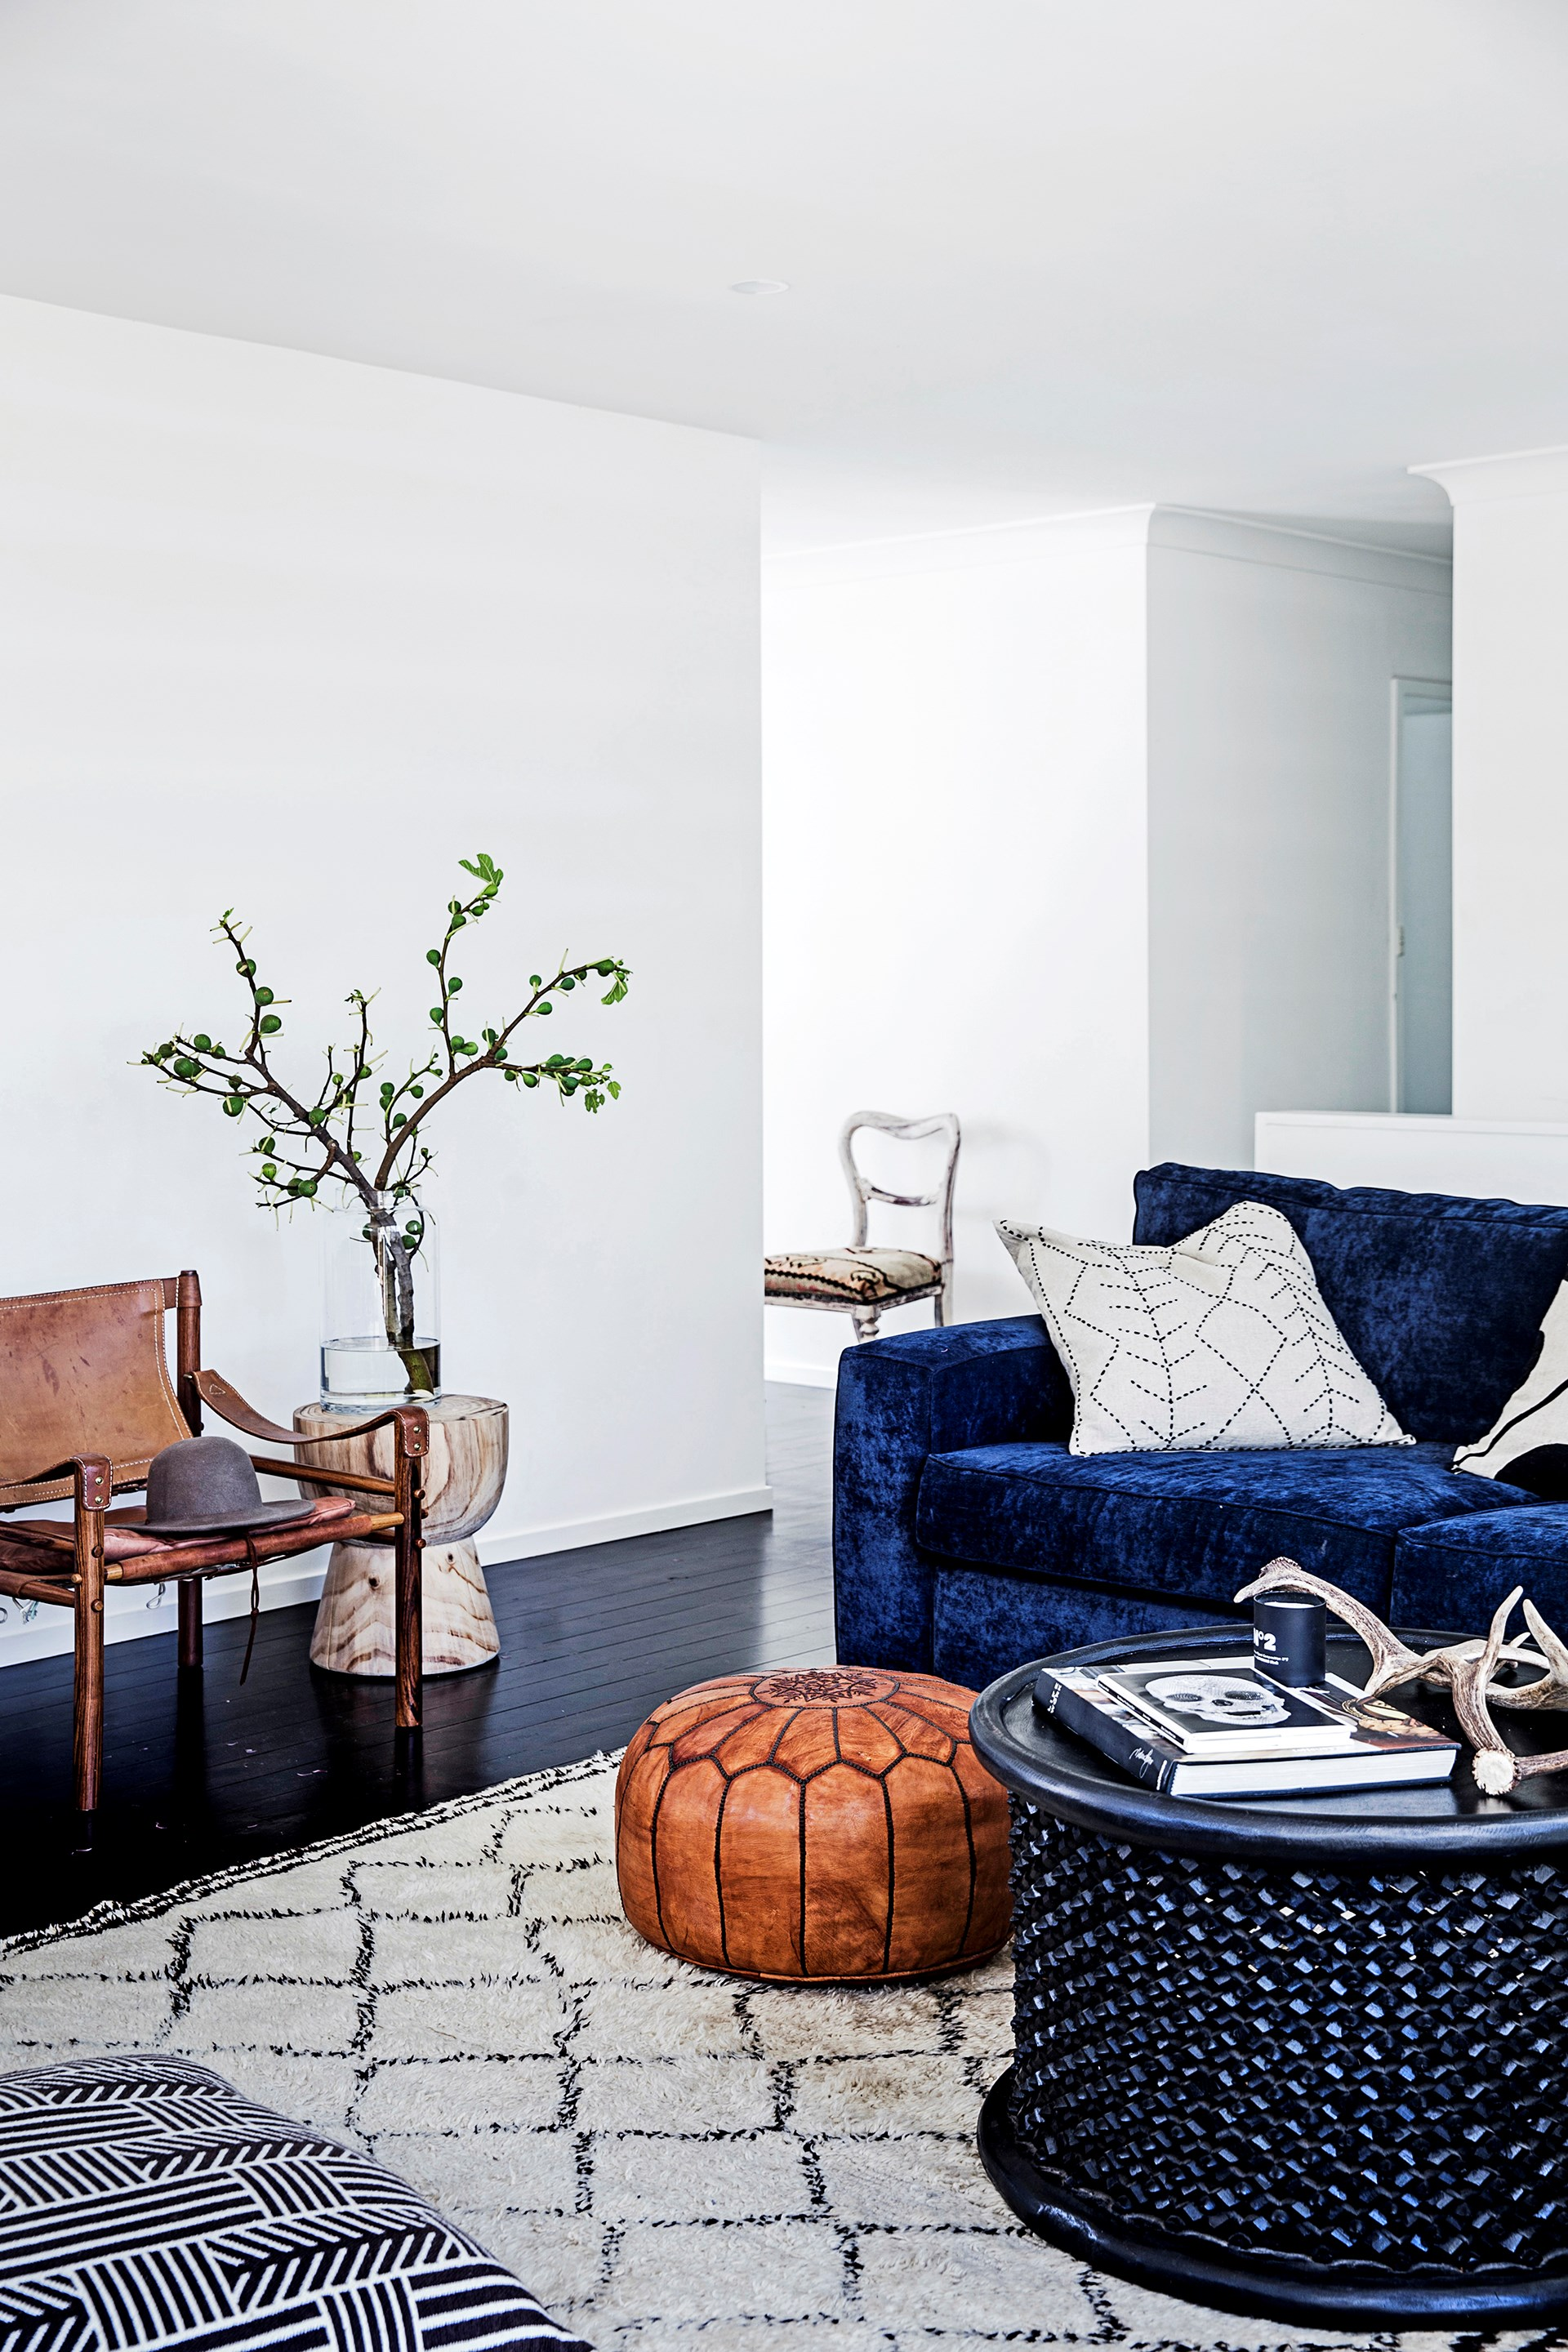 [1970s brick home gets a groovy revamp](http://www.homestolove.com.au/before-and-after-1970s-brick-home-gets-groovy-revamp-3516). Photo: Chris Warnes / *real living*